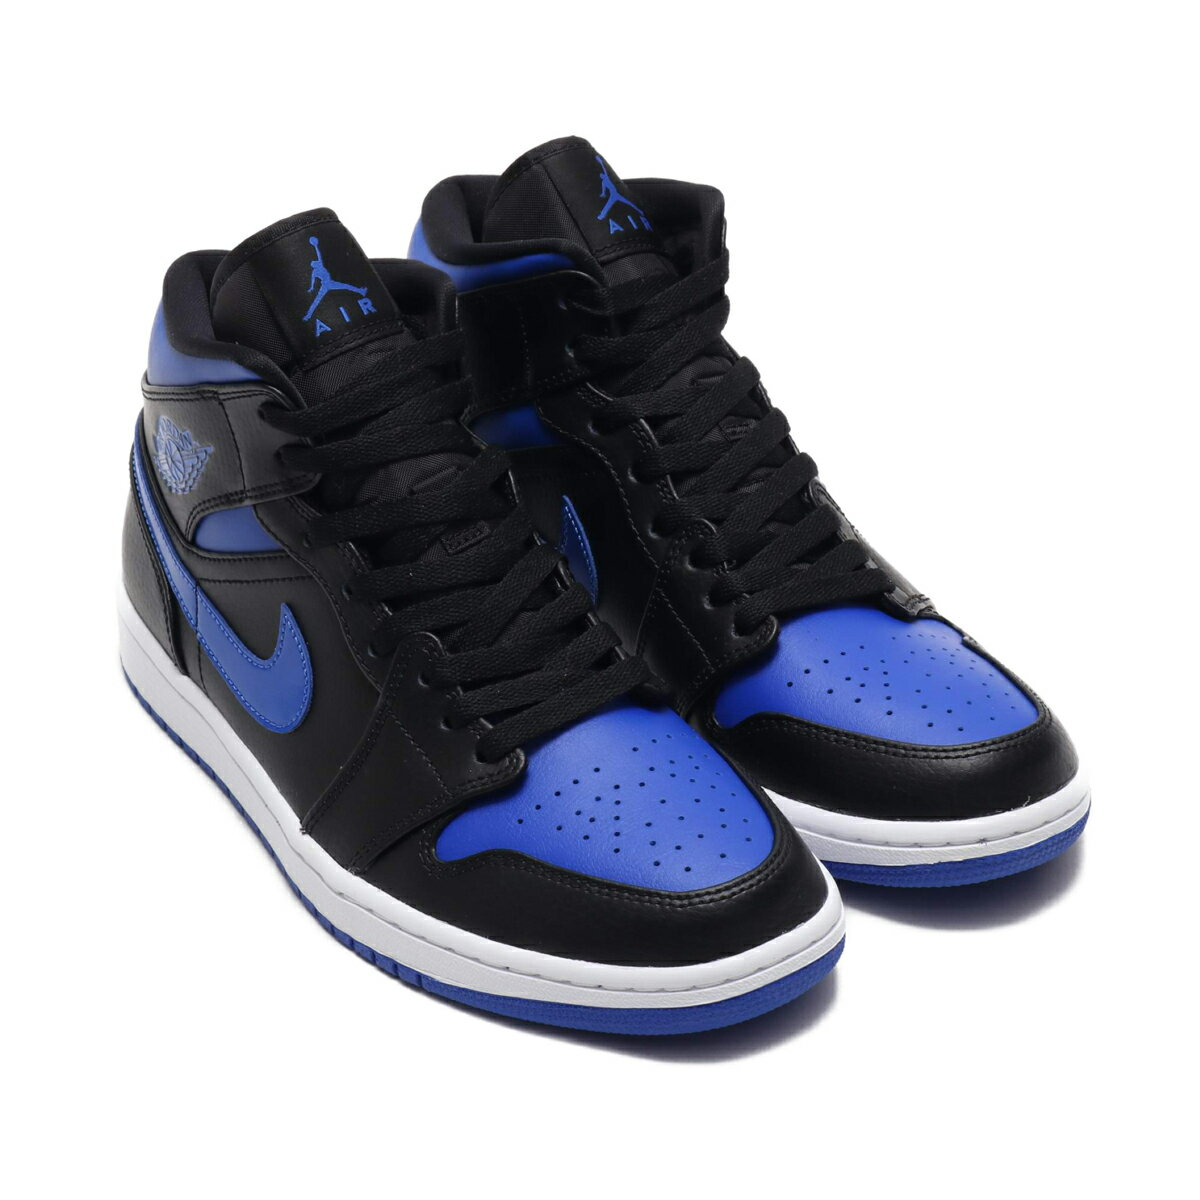 メンズ靴, スニーカー NIKE AIR JORDAN 1 MID( 1 MID)BLACKHYPER ROYAL-WHITE 20SP-I